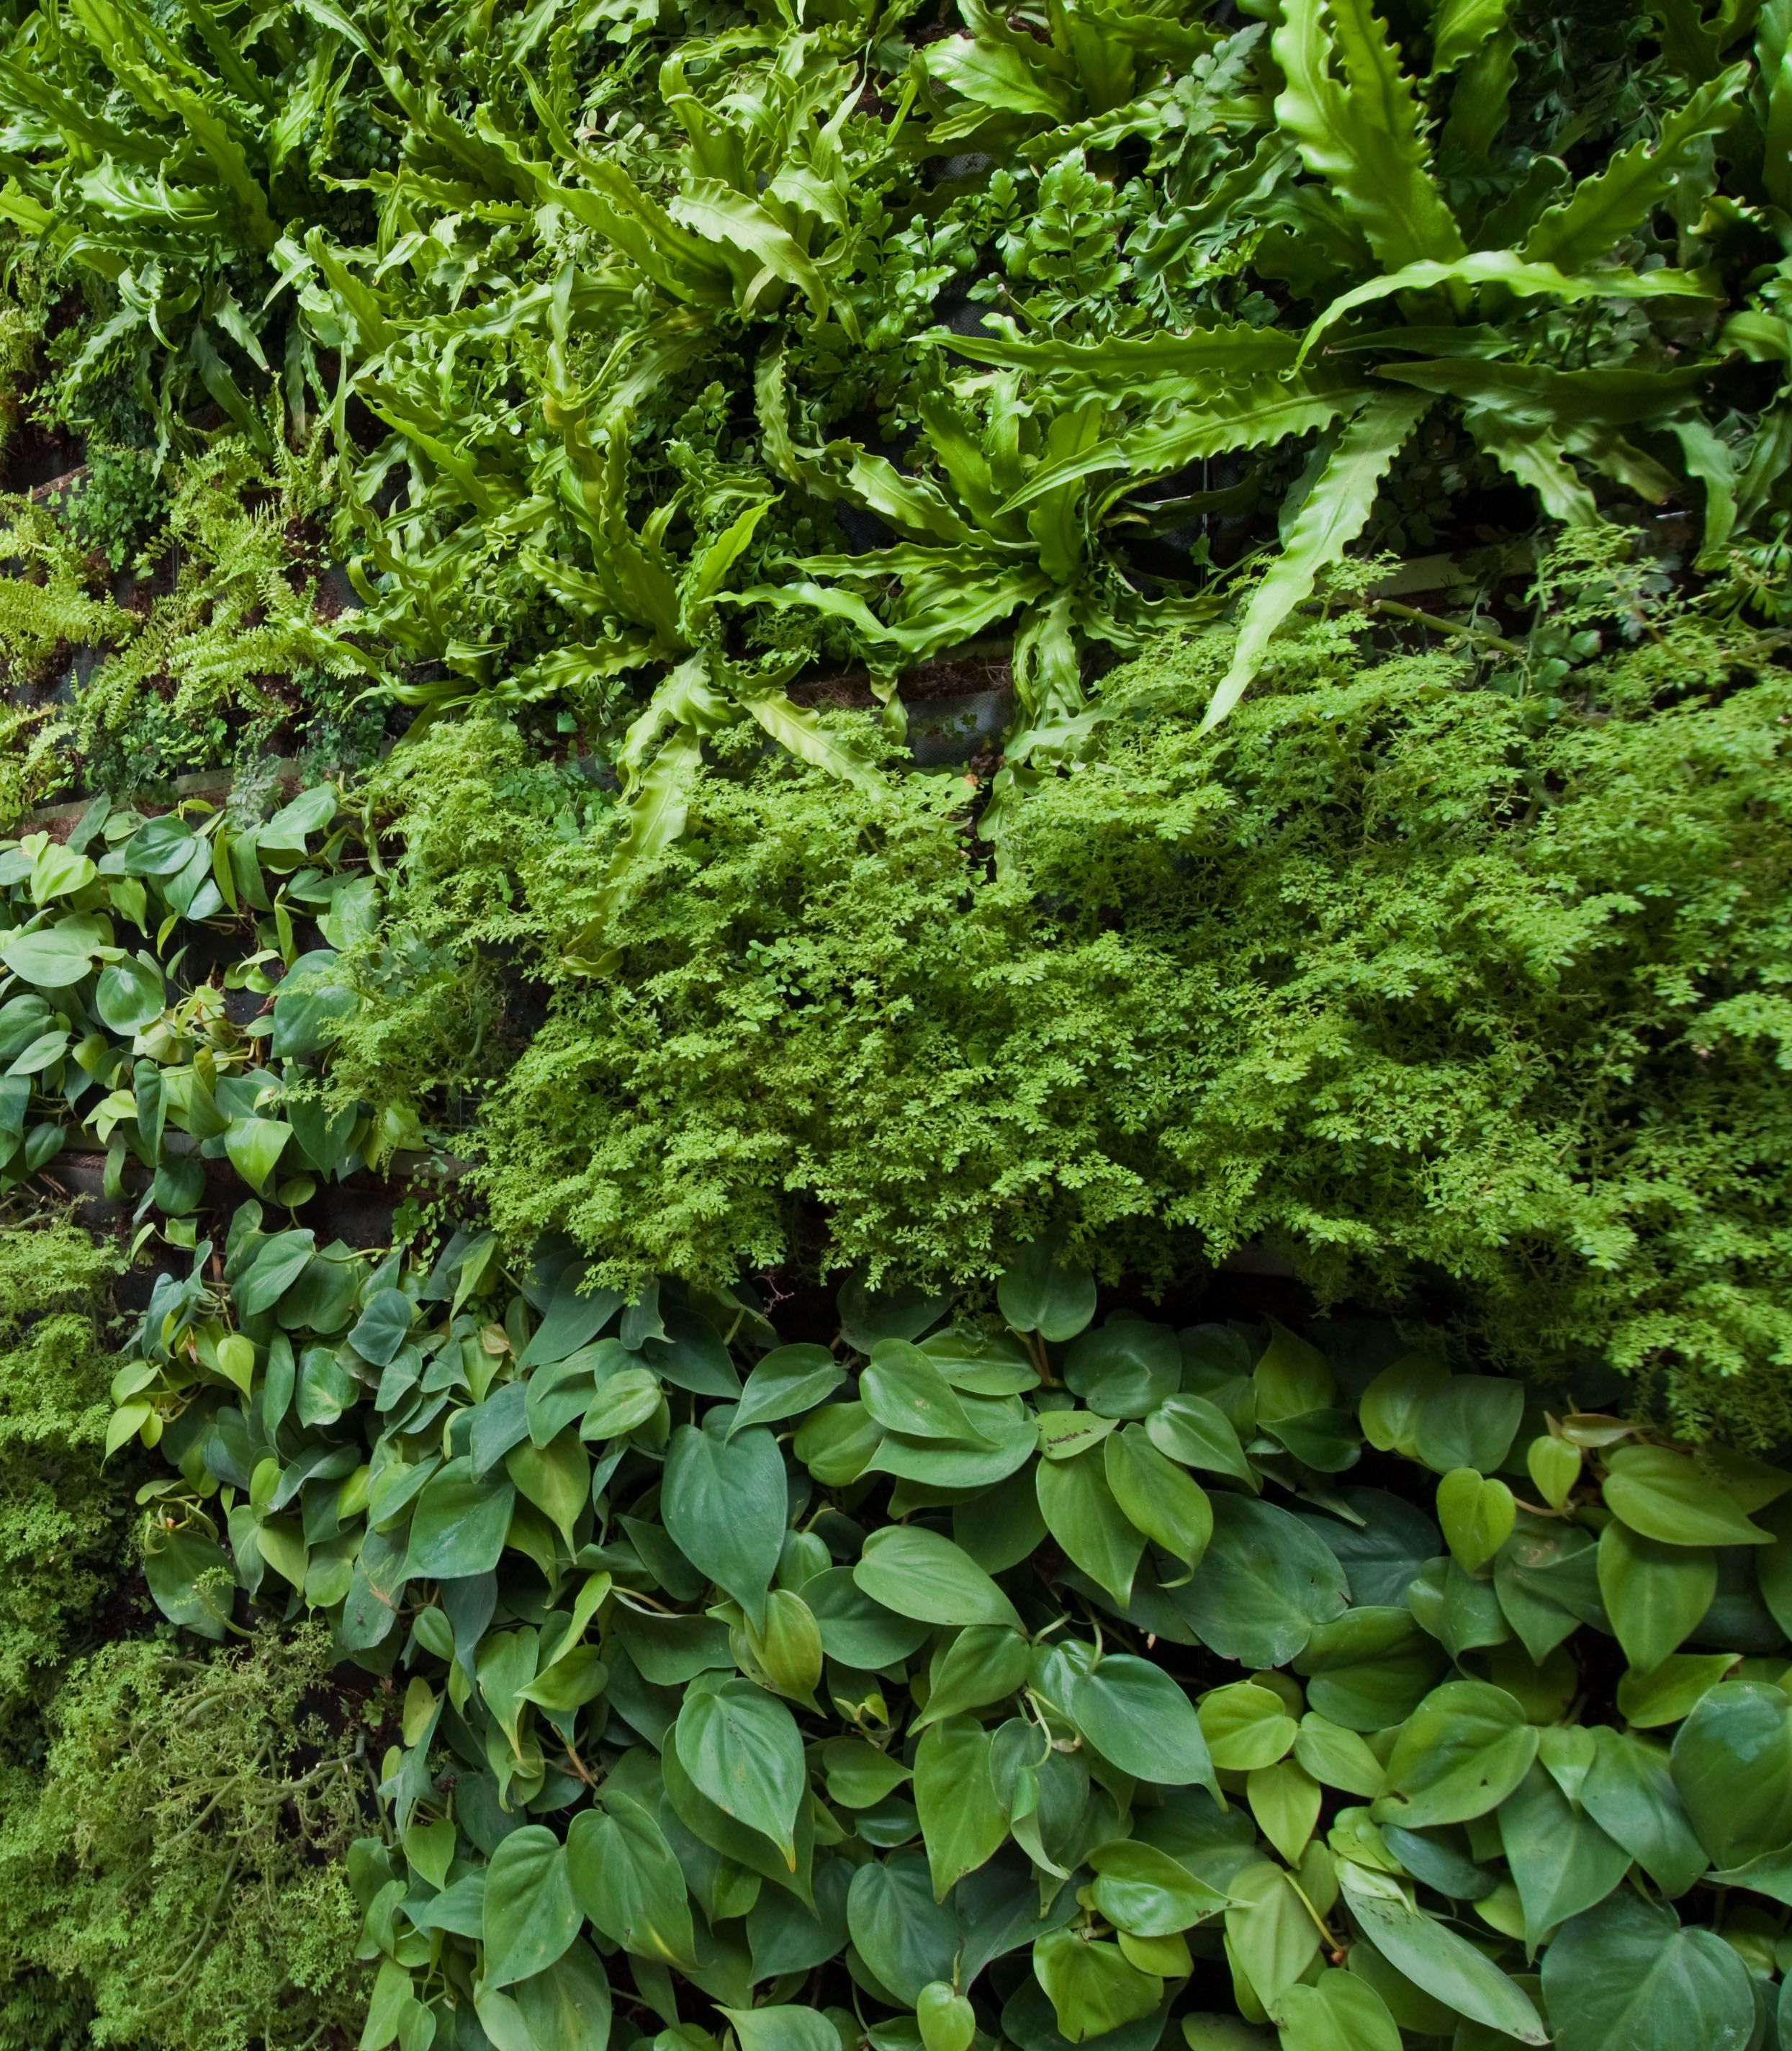 Image Result For Plant Wall Texture Timirest Plant Wall Green